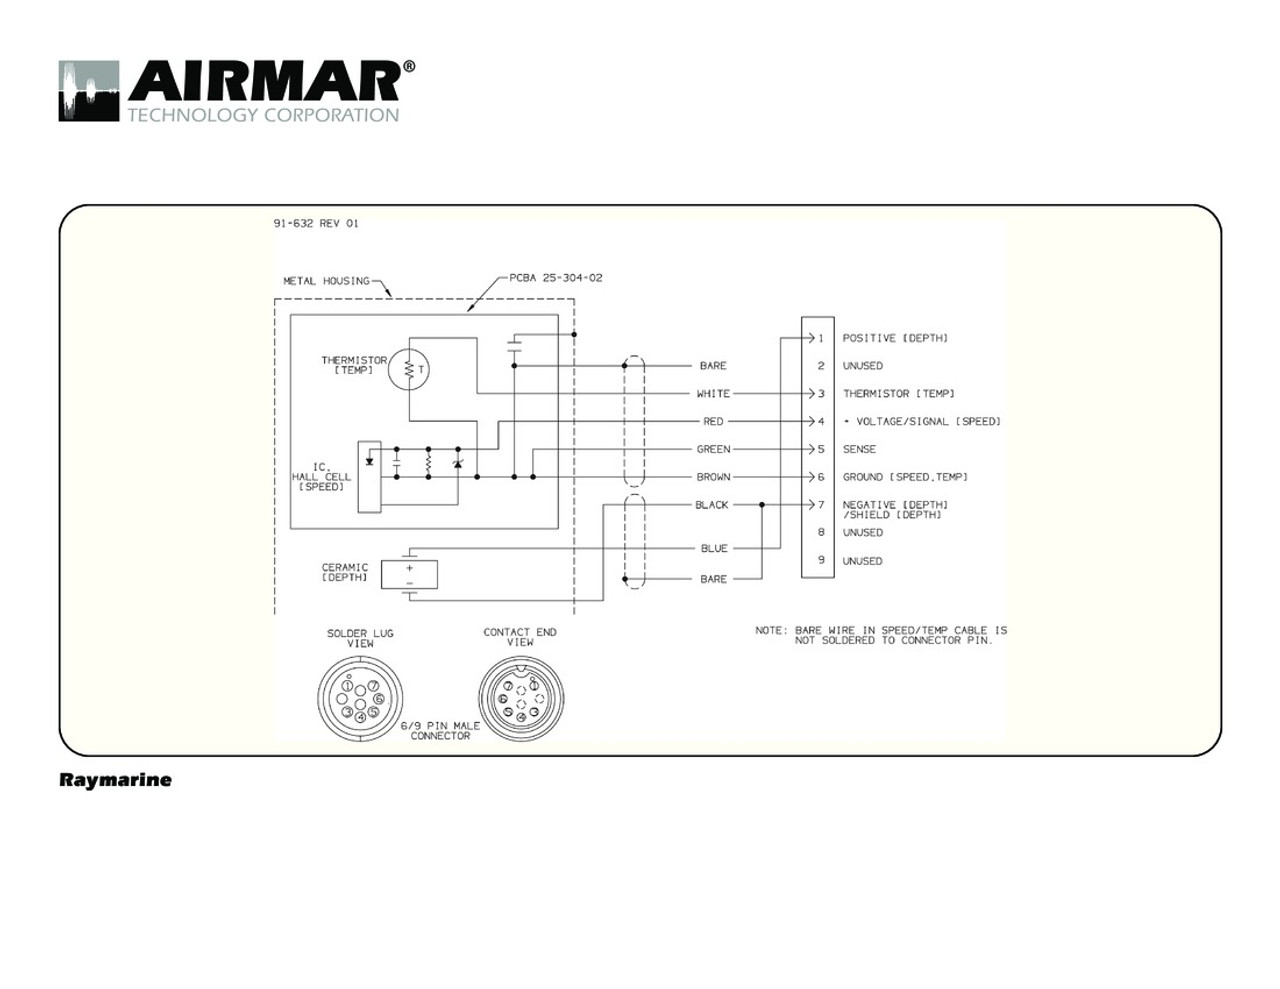 airmar wiring diagram raymarine a series 9 pin blue bottle marine Kenwood Wiring Diagrams depth, speed \u0026 temperature transducers for raymarine a series with raymarine 9 pin